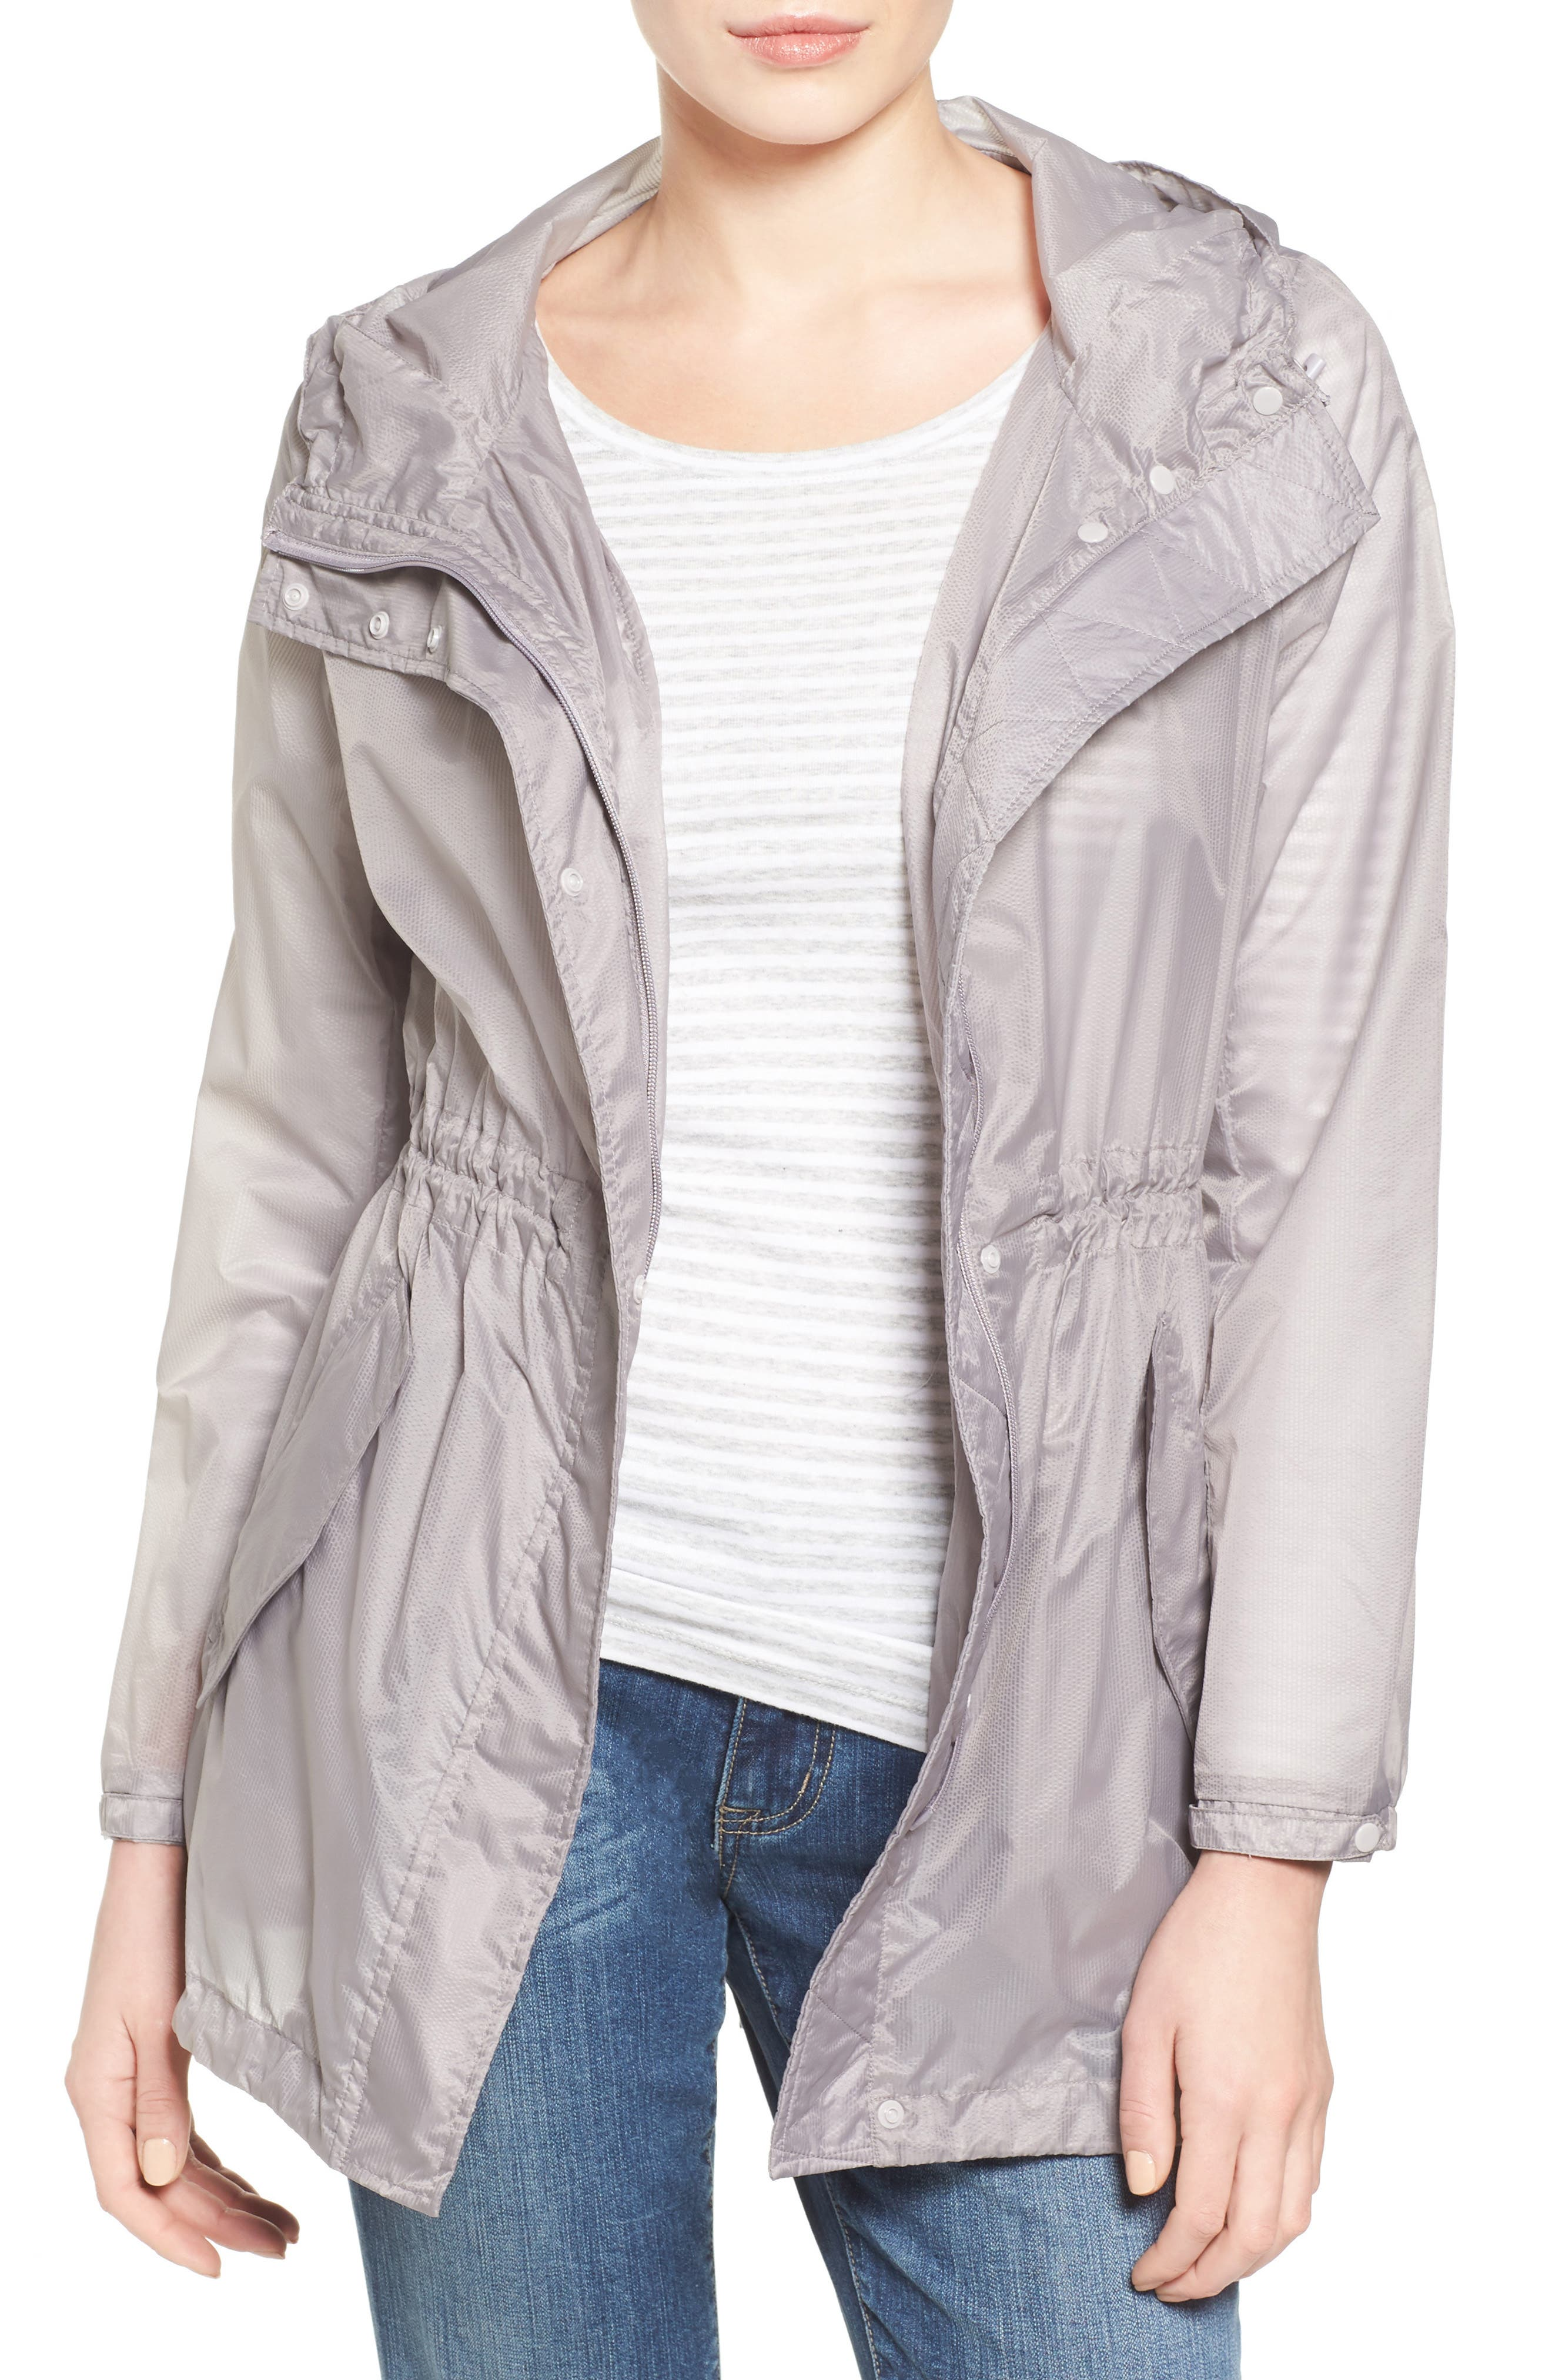 Teri Translucent Rain Jacket,                             Main thumbnail 1, color,                             068